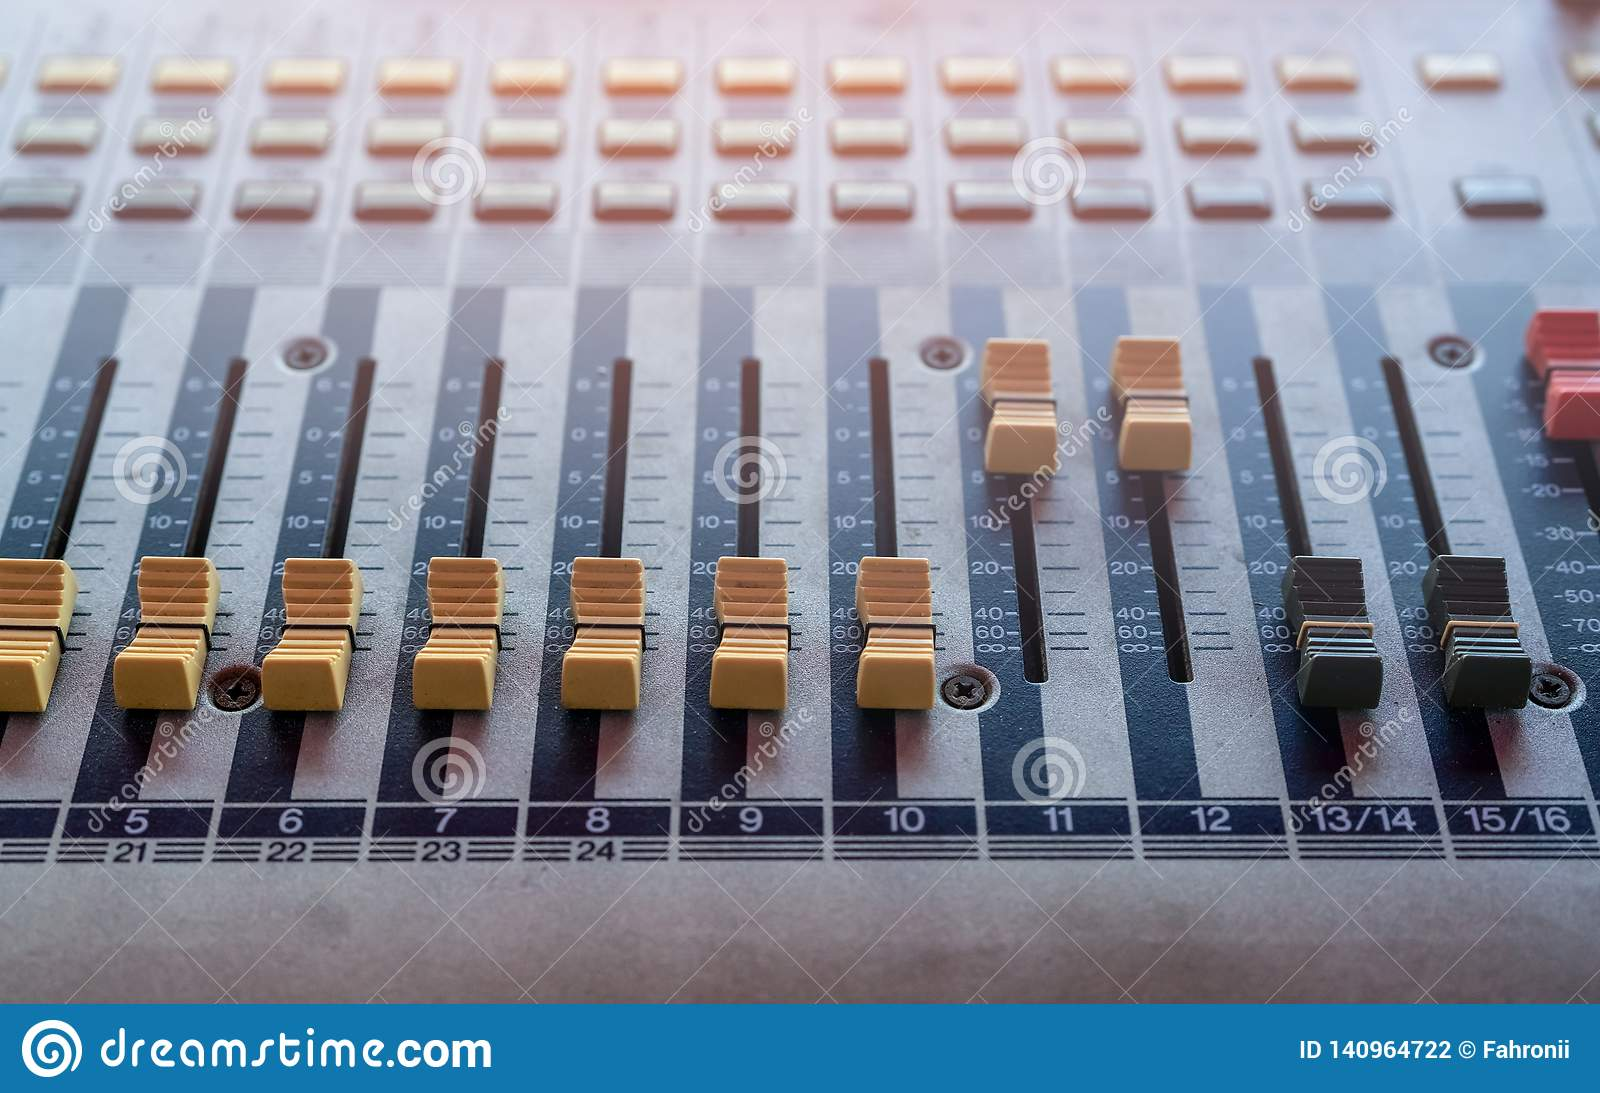 Audio sound mixer console. Sound mixing desk. Music mixer control panel in recording studio. Audio mixing console with faders